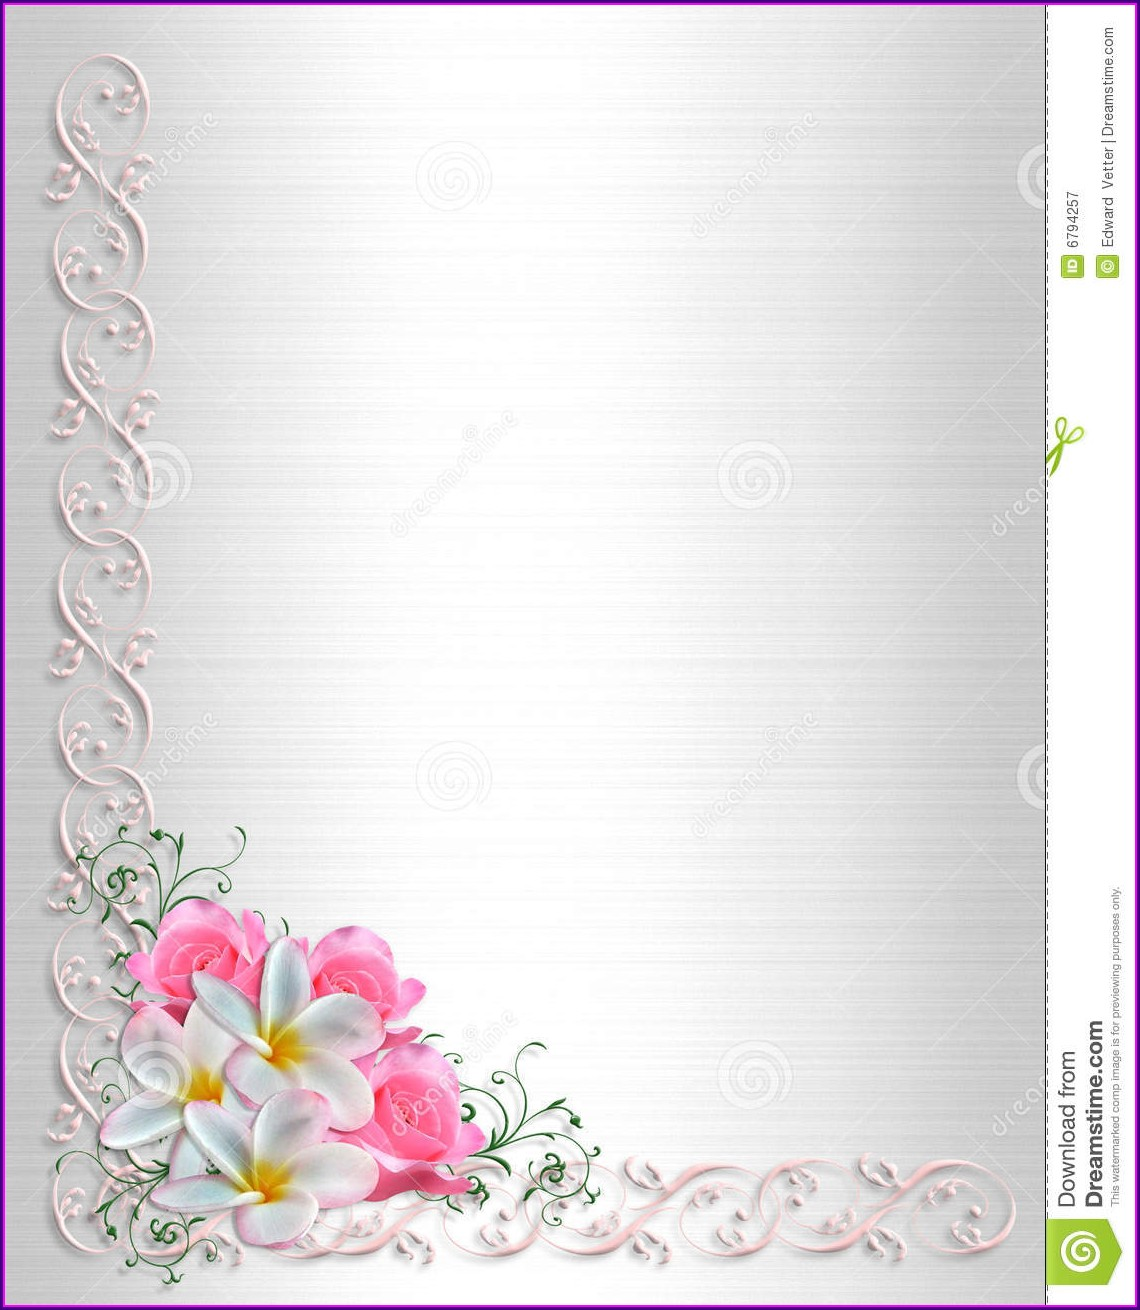 Wedding Invitation Background Hd Free Download